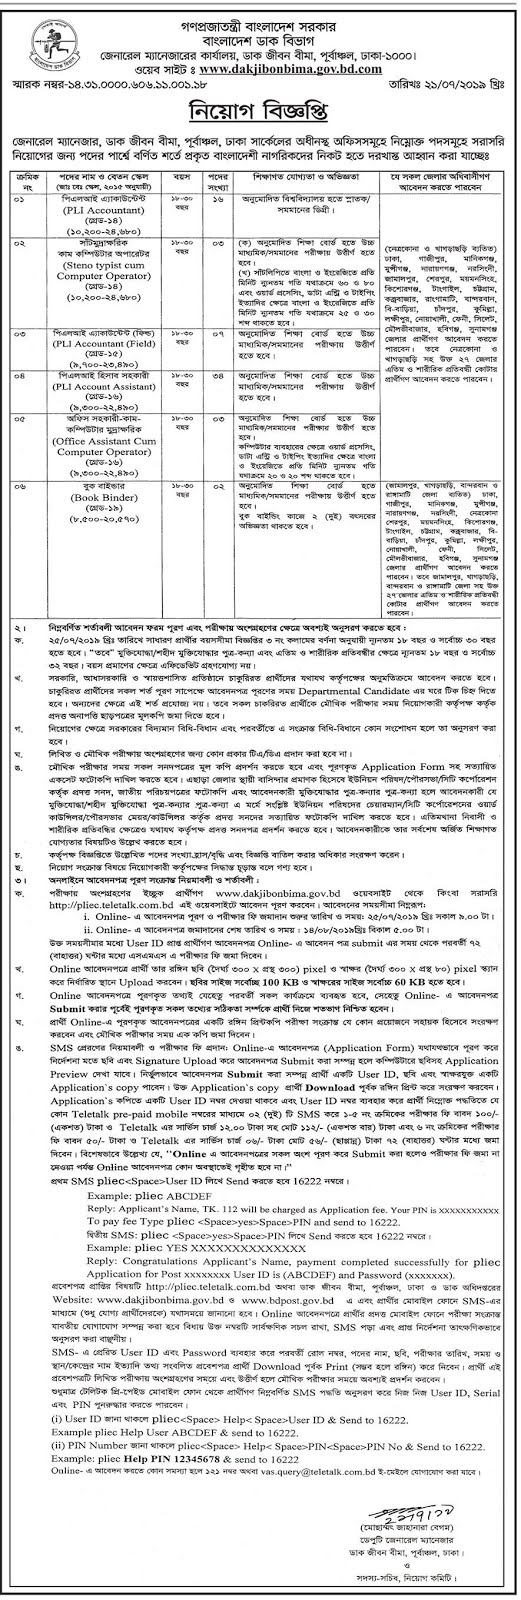 Bangladesh Post Office New Job Circular 2019